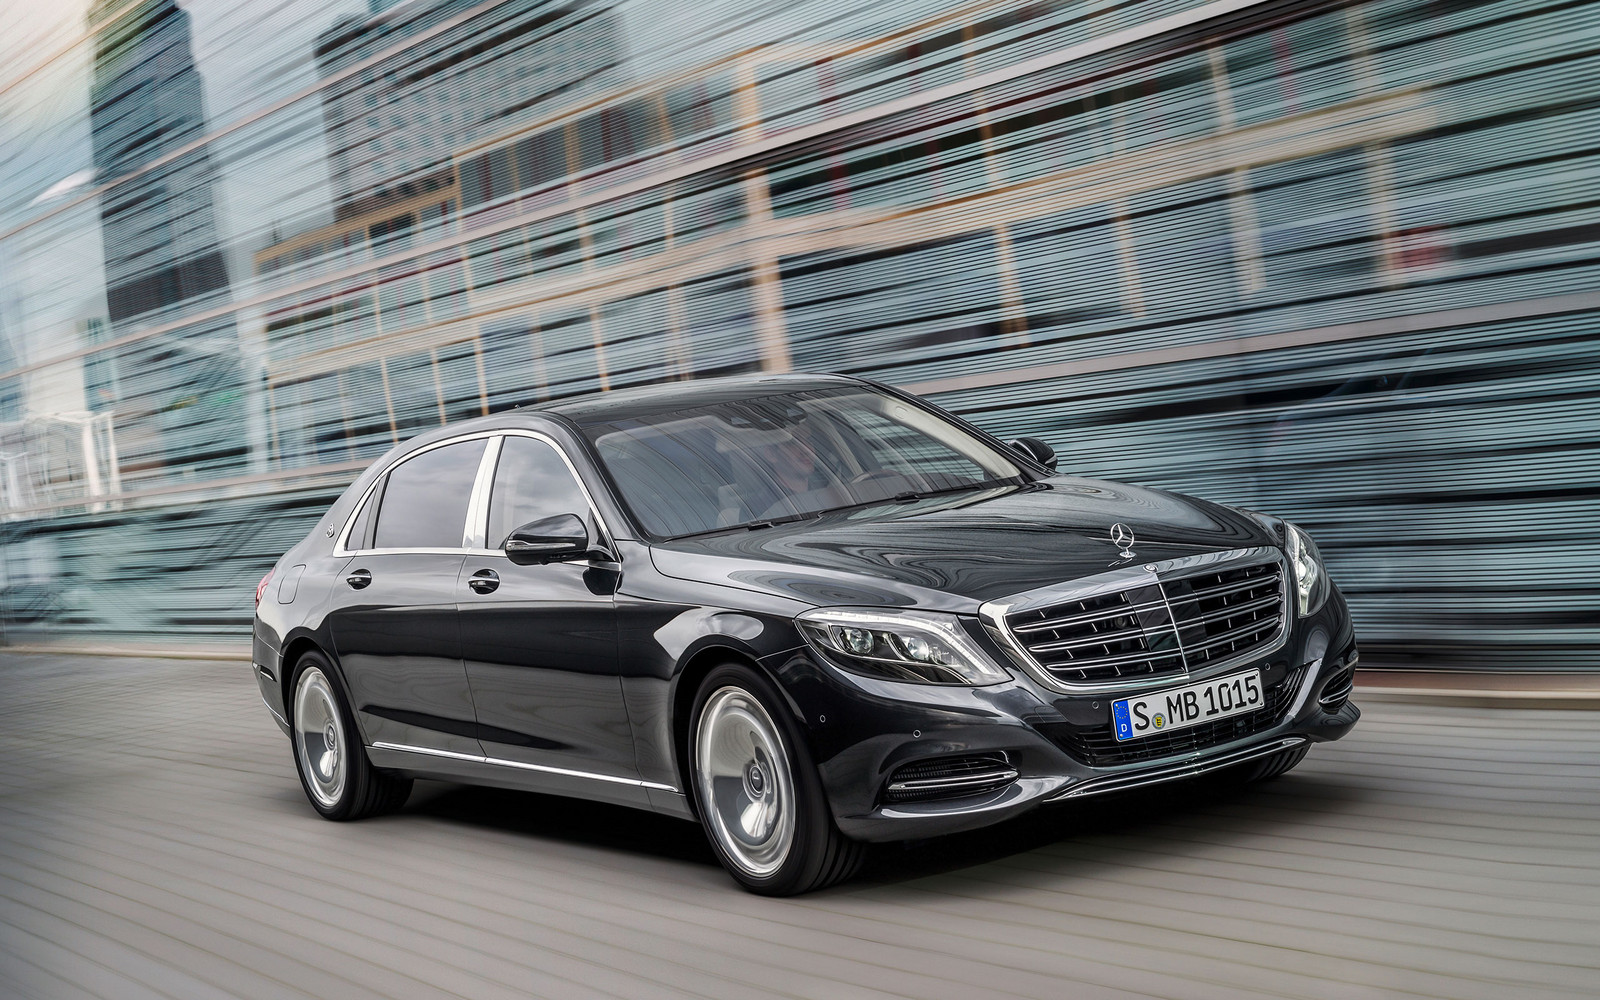 Black 2016 Mercedes-Benz S600 MAYBACH